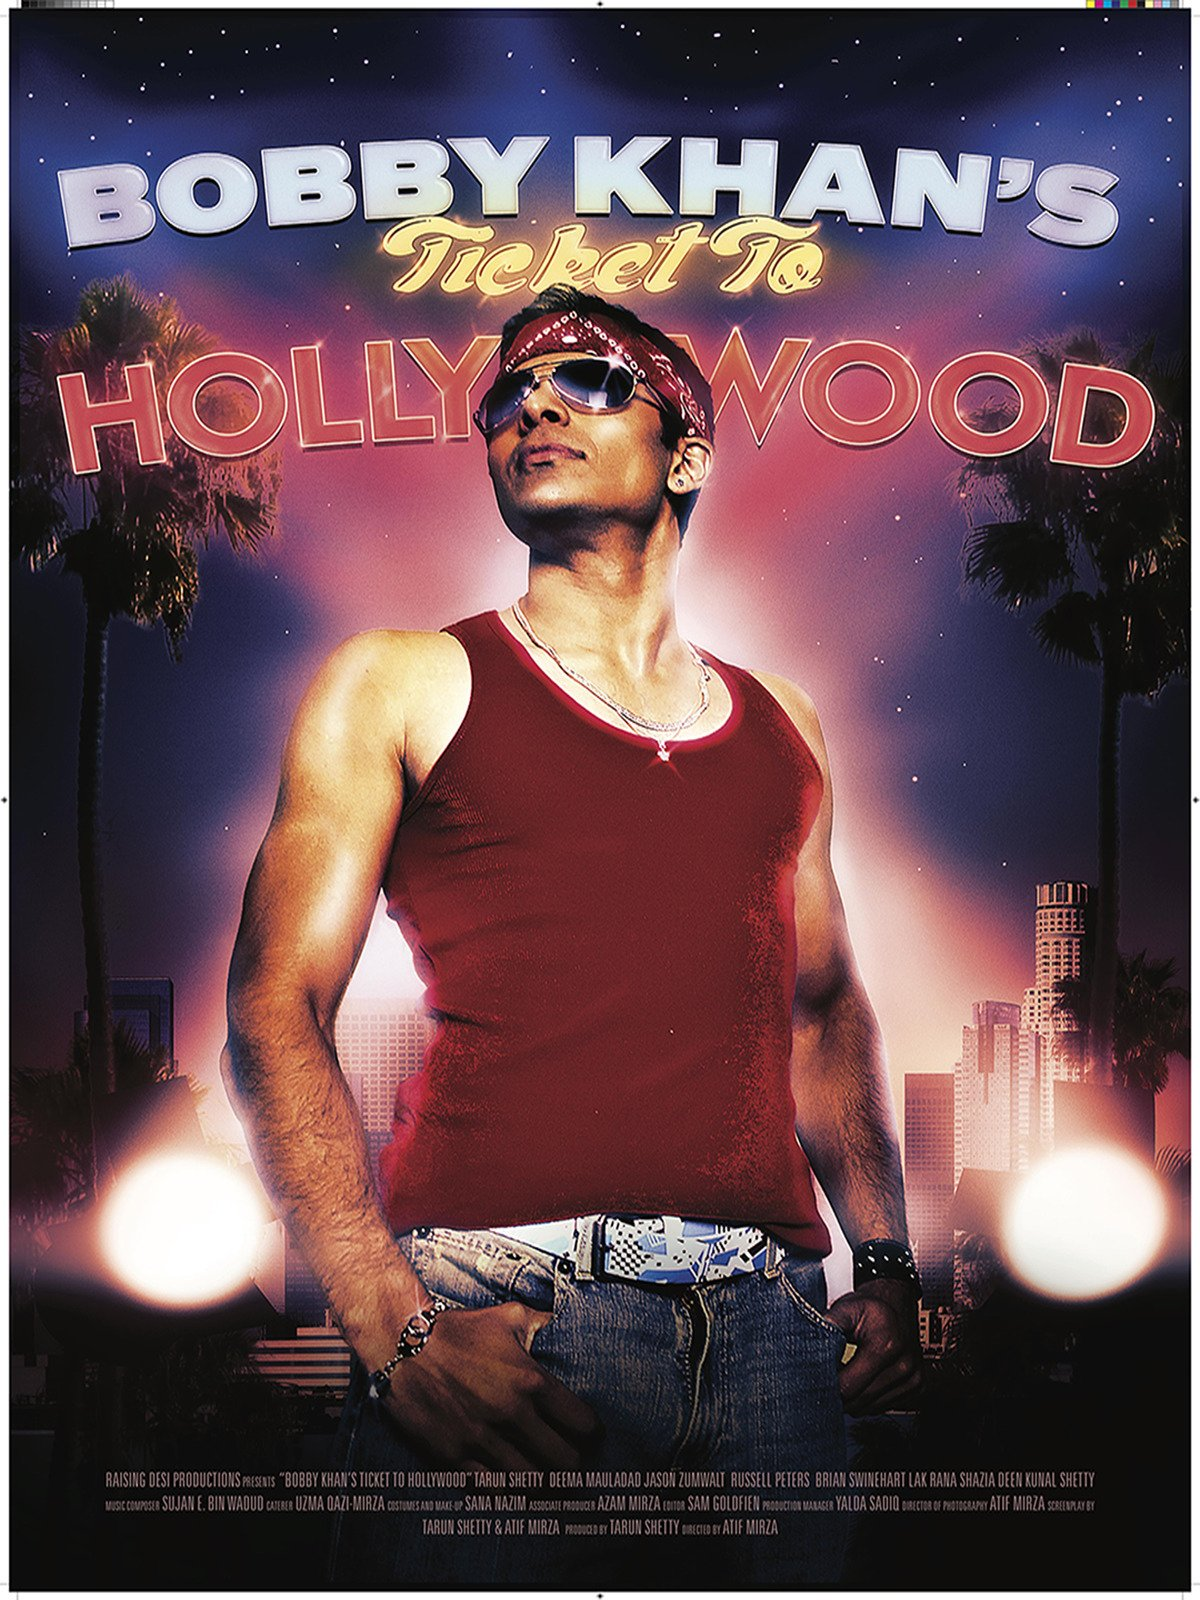 Bobby Khan's Ticket To Hollywood